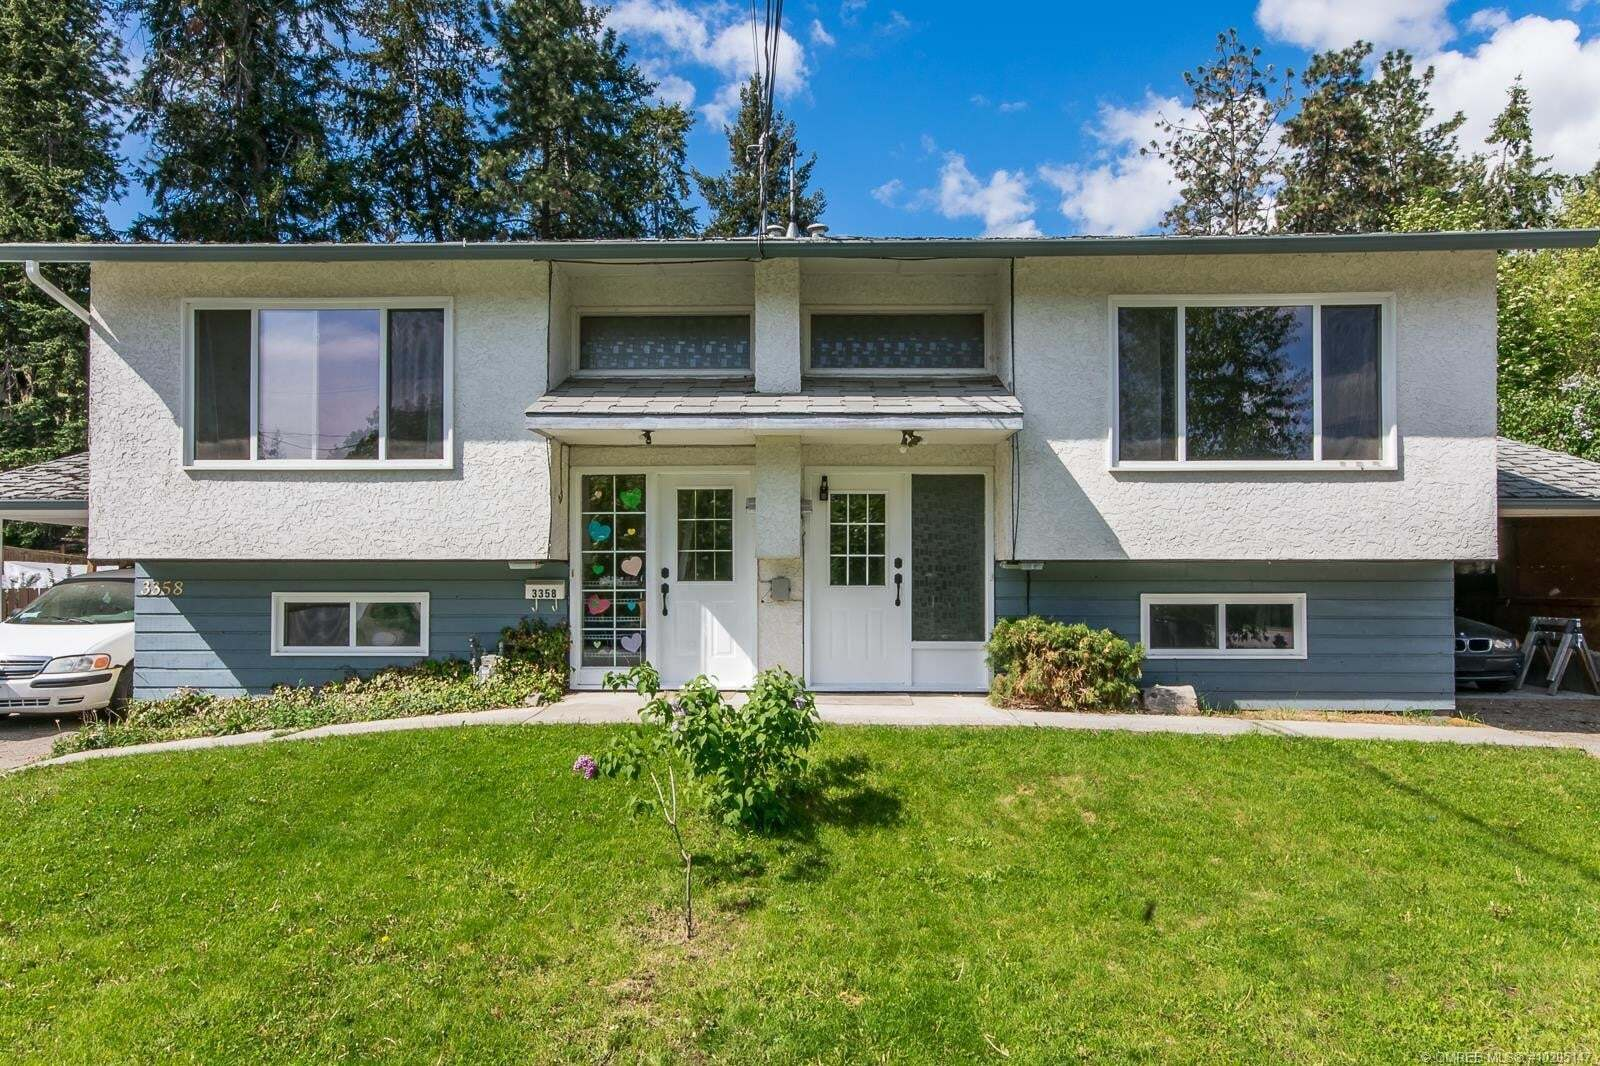 Townhouse for sale at 3358 Mcmillan Rd West Kelowna British Columbia - MLS: 10205147